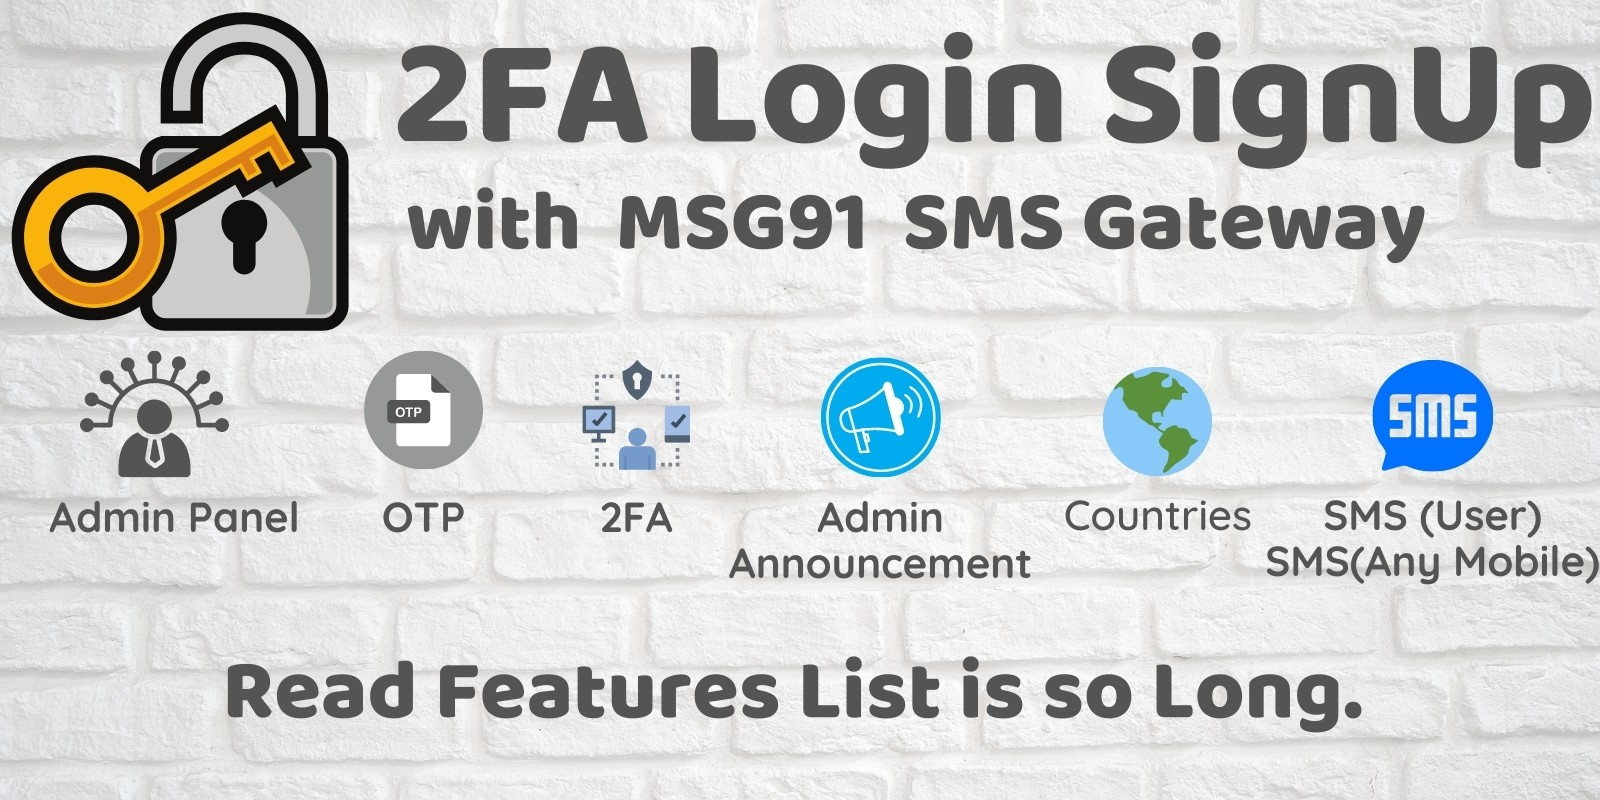 2FA Login SignUp Via MSG91 SMS And Admin Panel